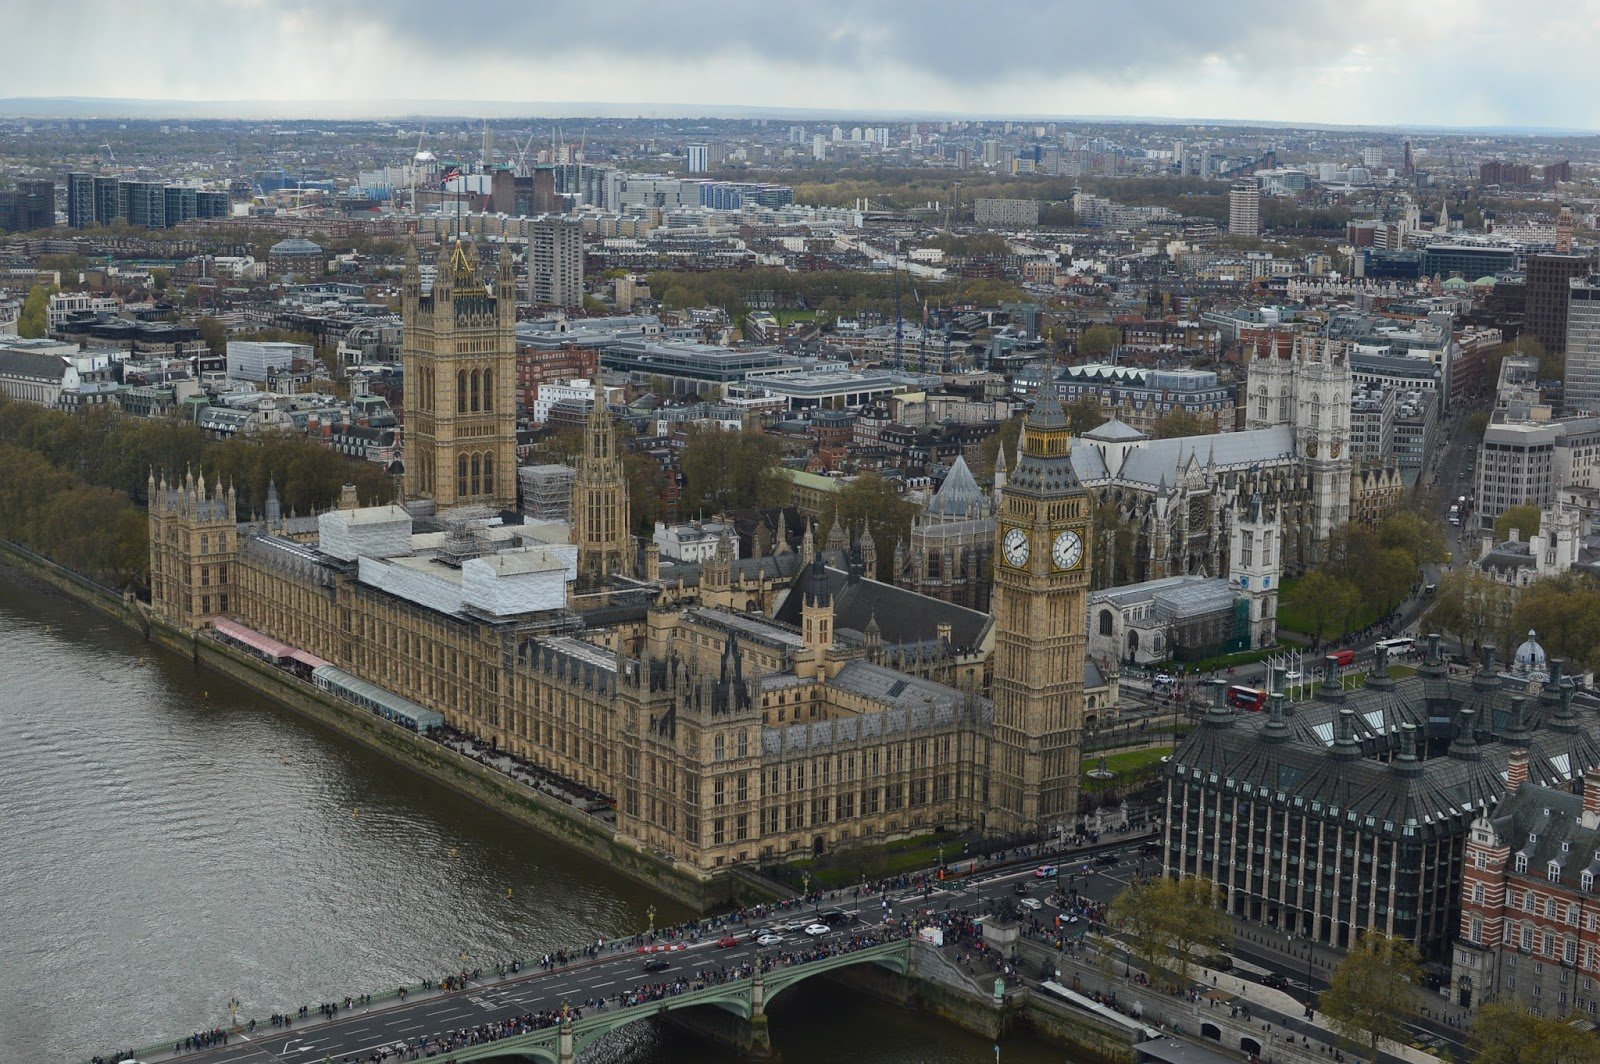 views from the London Eye | is the London Eye worth it | London Eye review | Big Ben London | Big Ben Parliament | London Instagrams